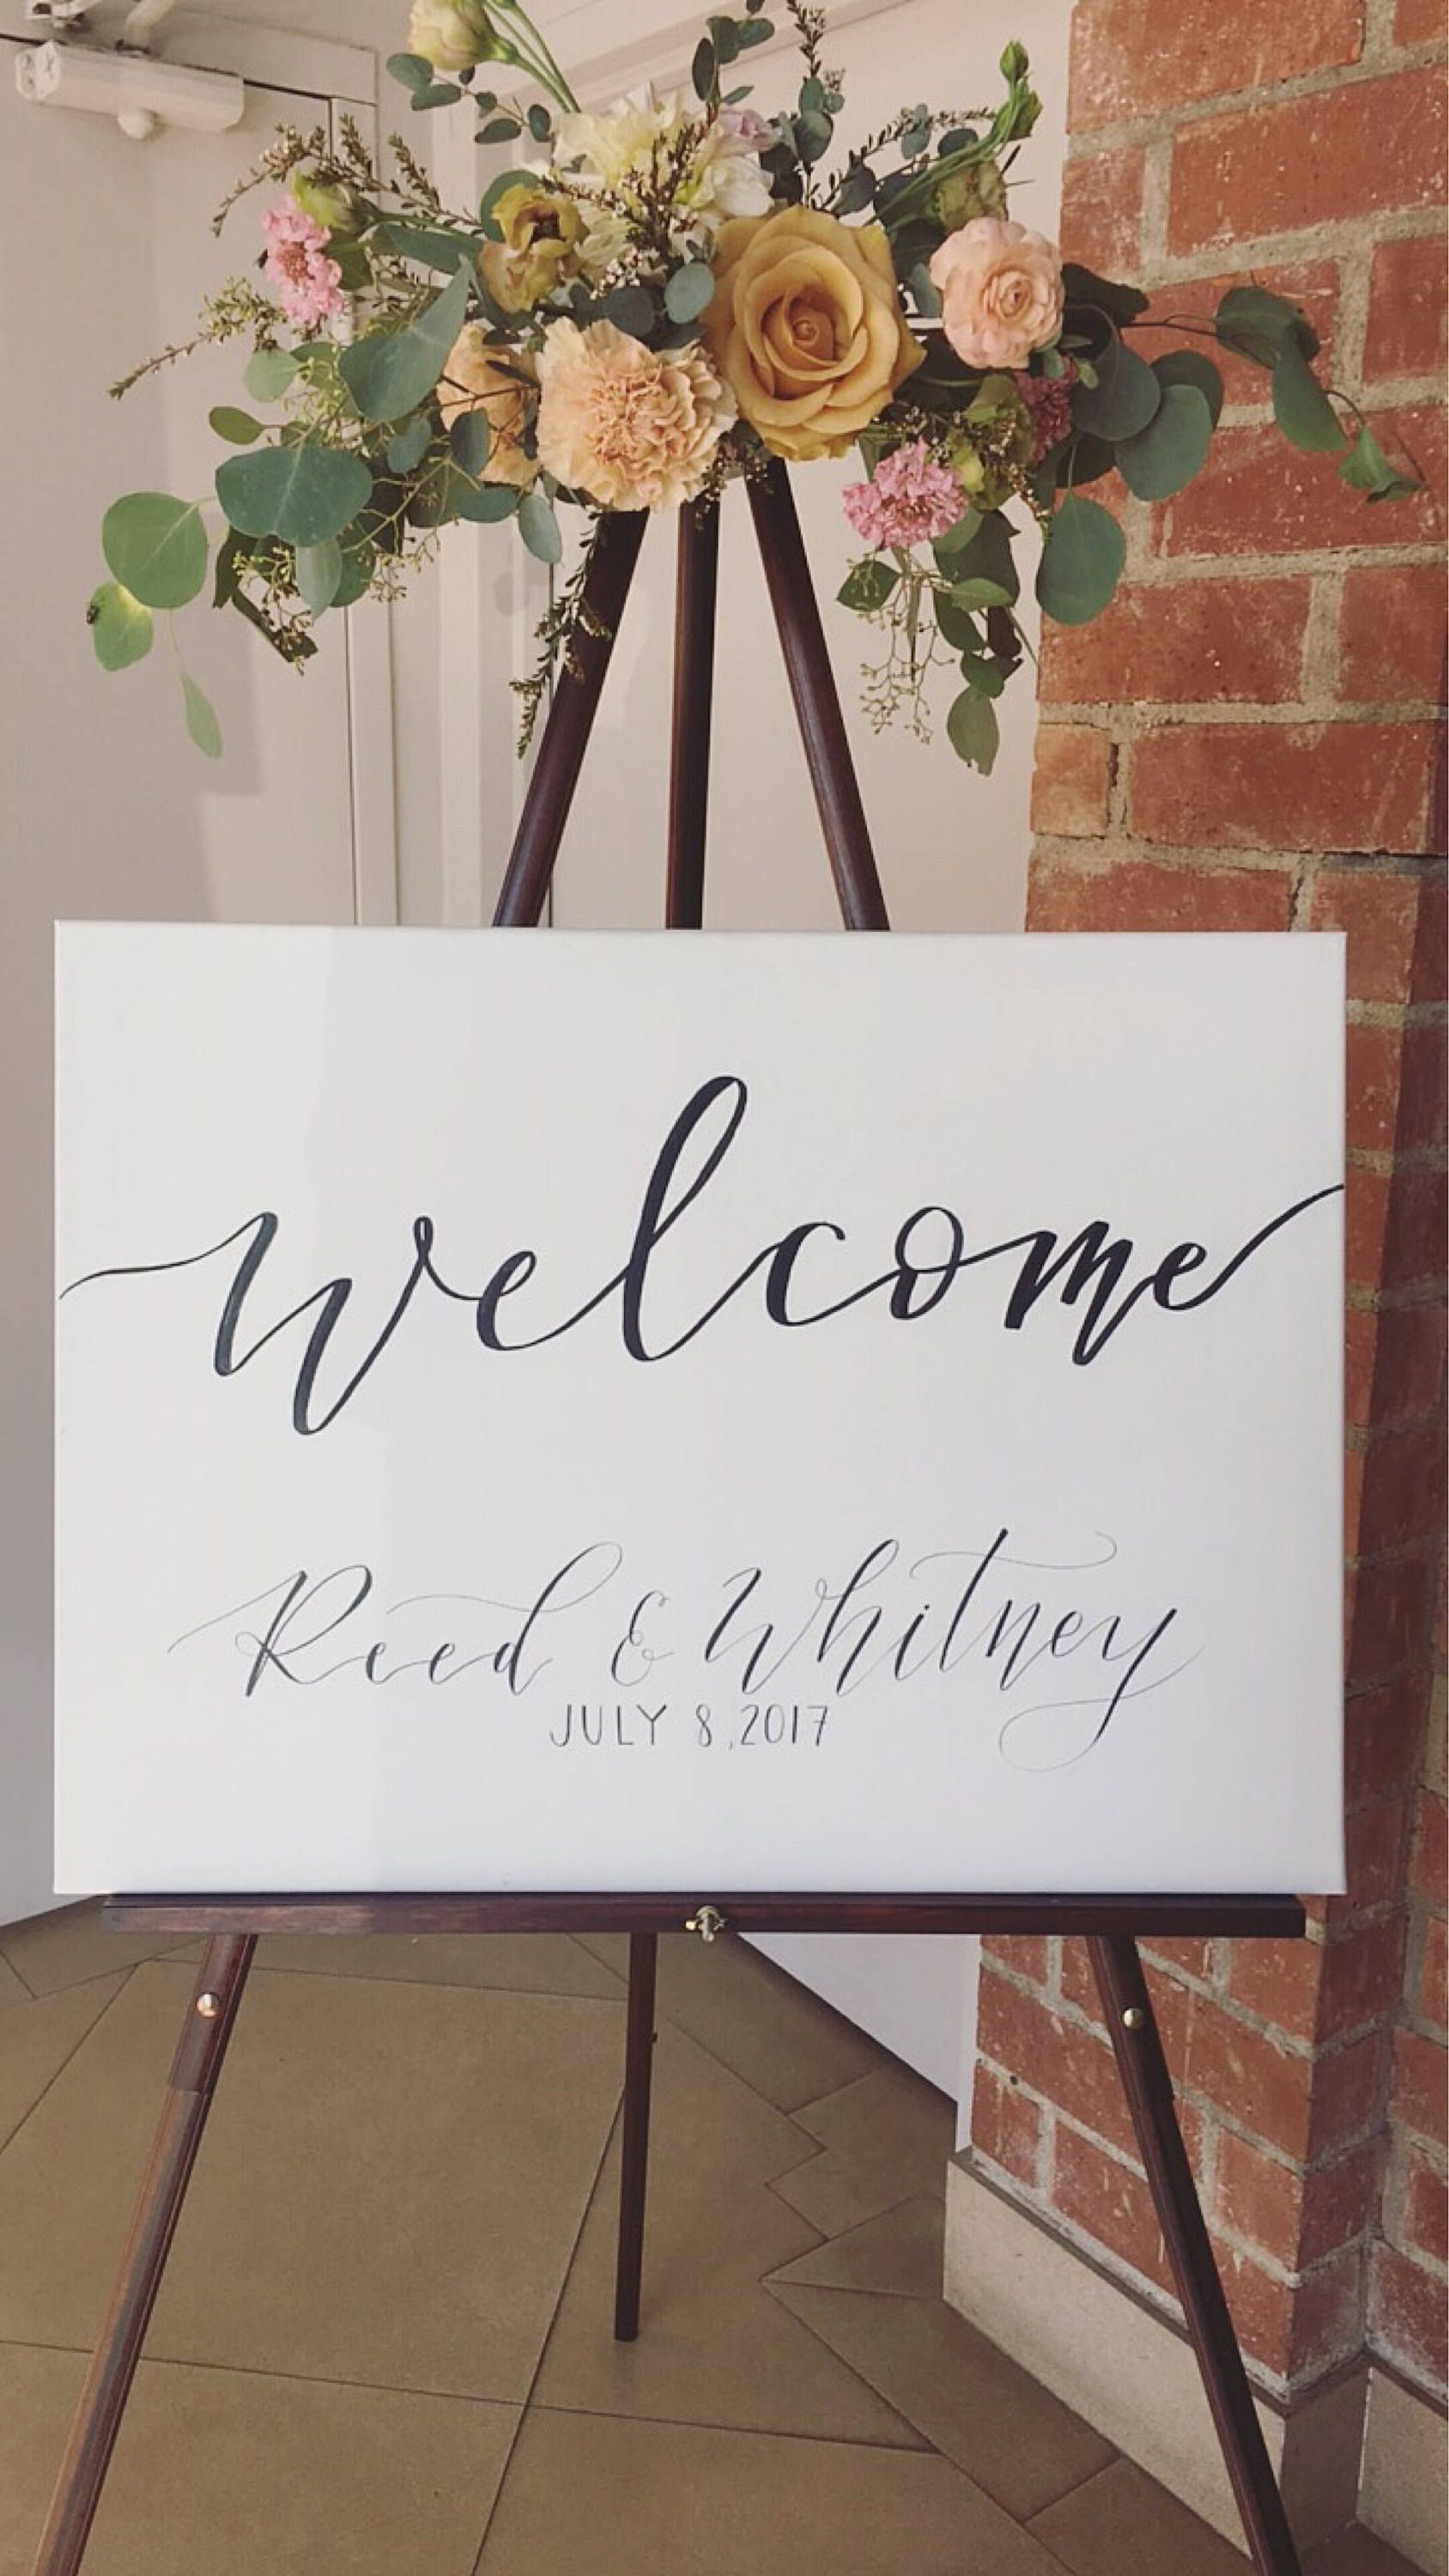 Personalised Wedding Welcome Signs Rustic Wooden Plank Style Vintage Signage MDF